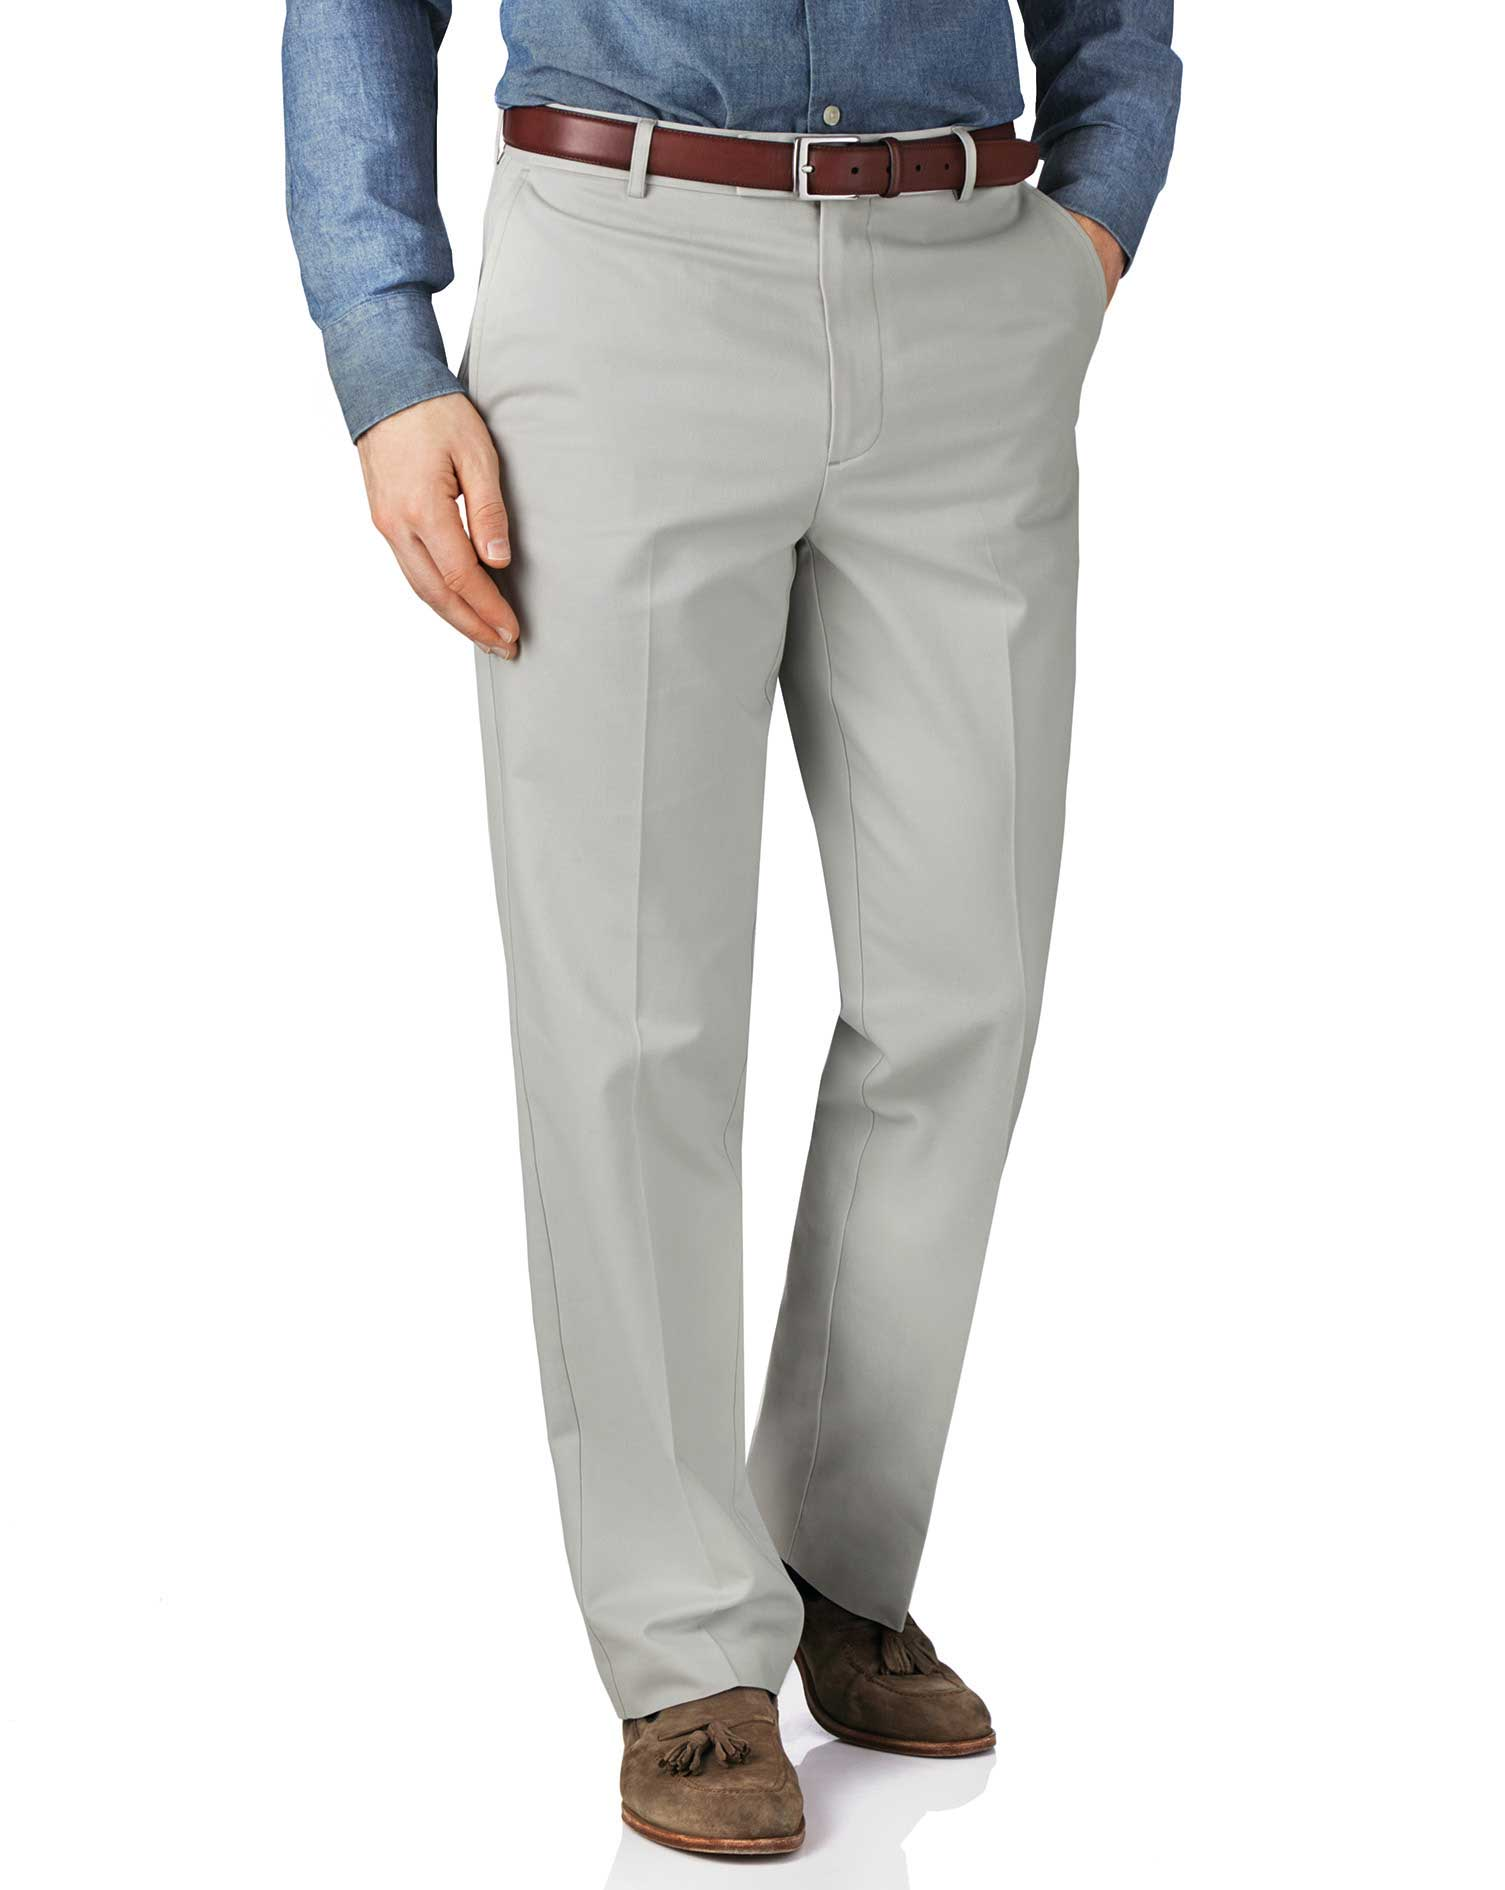 Silver Grey Classic Fit Flat Front Non-Iron Cotton Chino Trousers Size W38 L30 by Charles Tyrwhitt